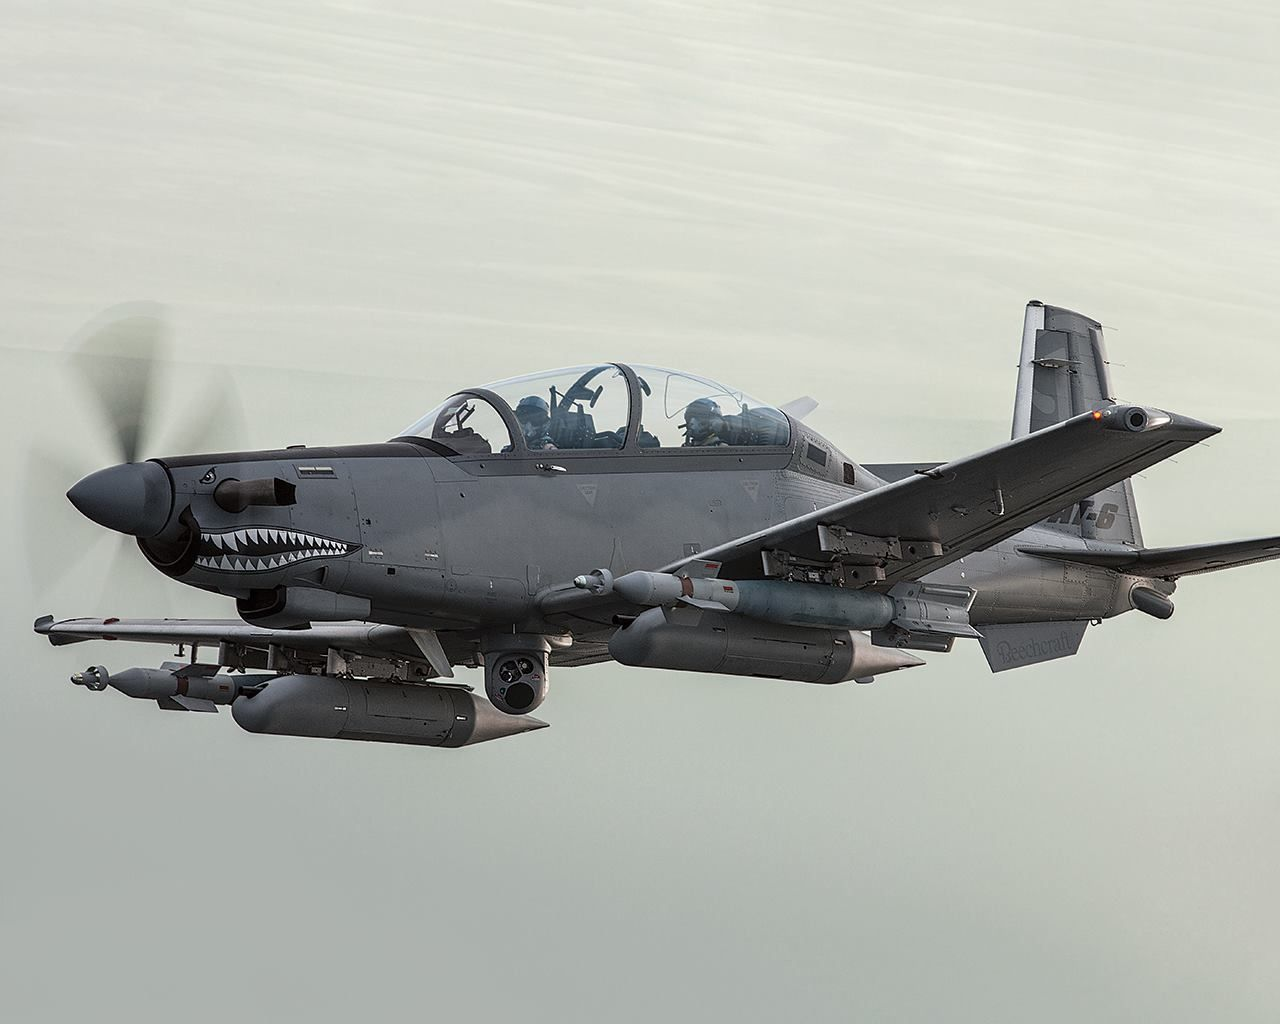 The Embraer EMB 314 Super Tucano Attack aircraft and Counter insurgency    Military airplane, Fighter planes, Military aircraft